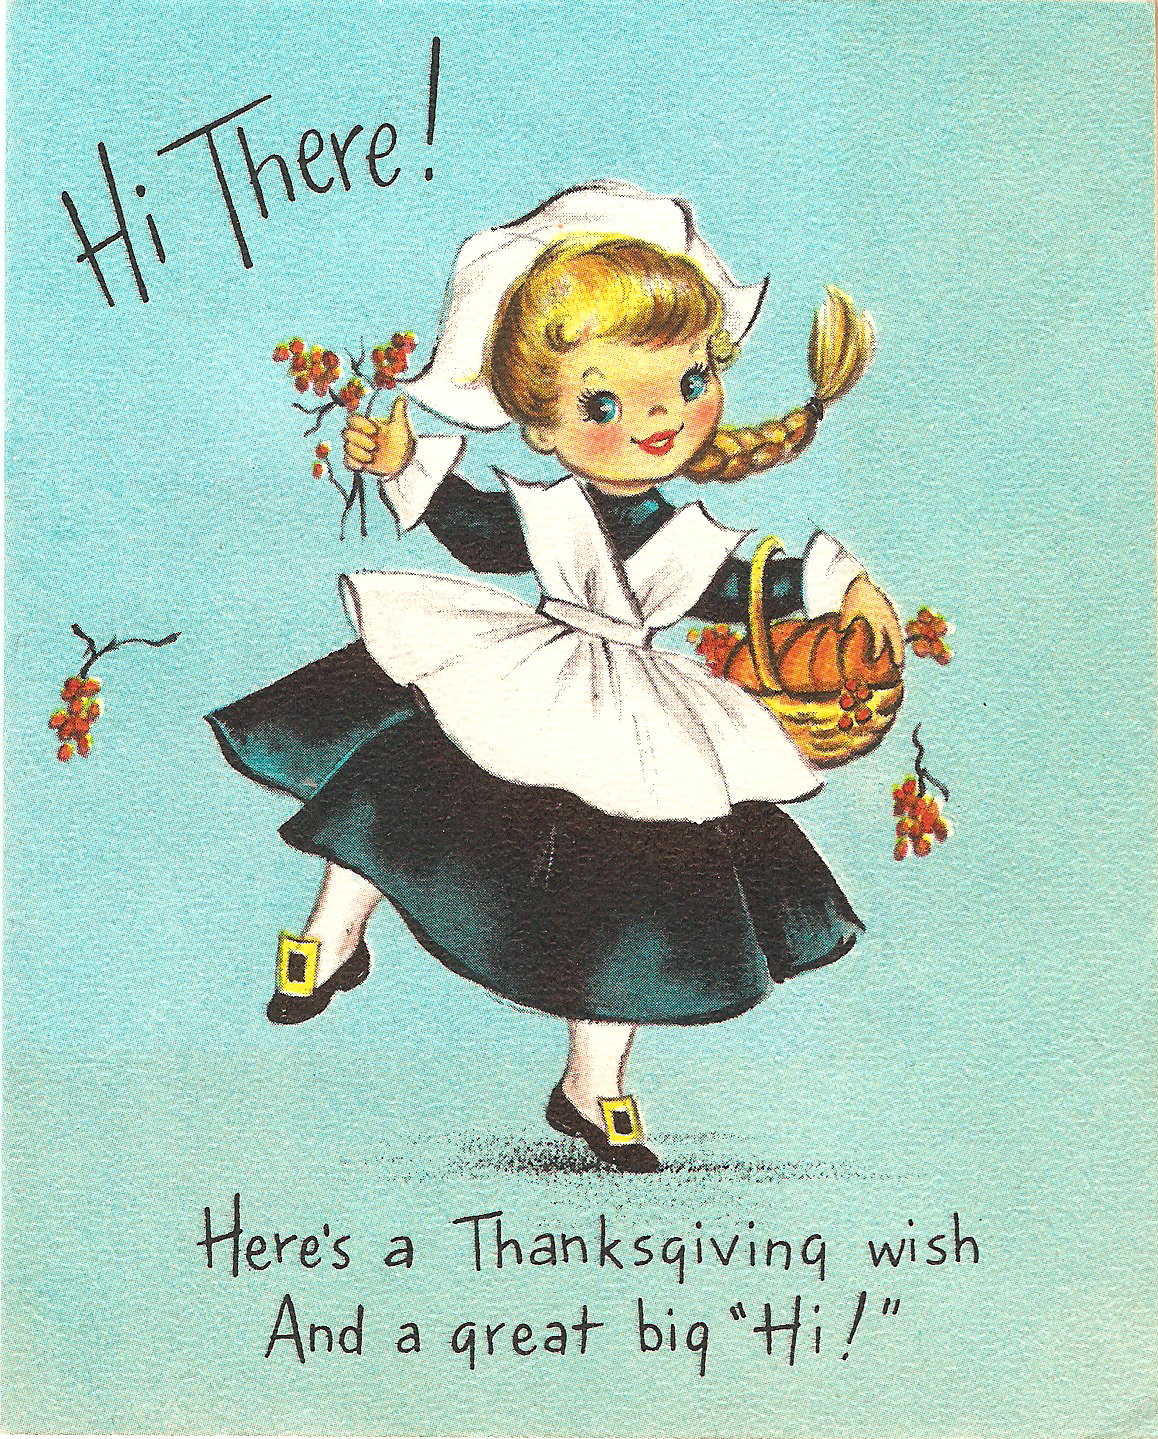 Hope everyone has a very Happy Thanksgiving. Here is a vintage card from Hallmark to celebrate. The cards front text says: